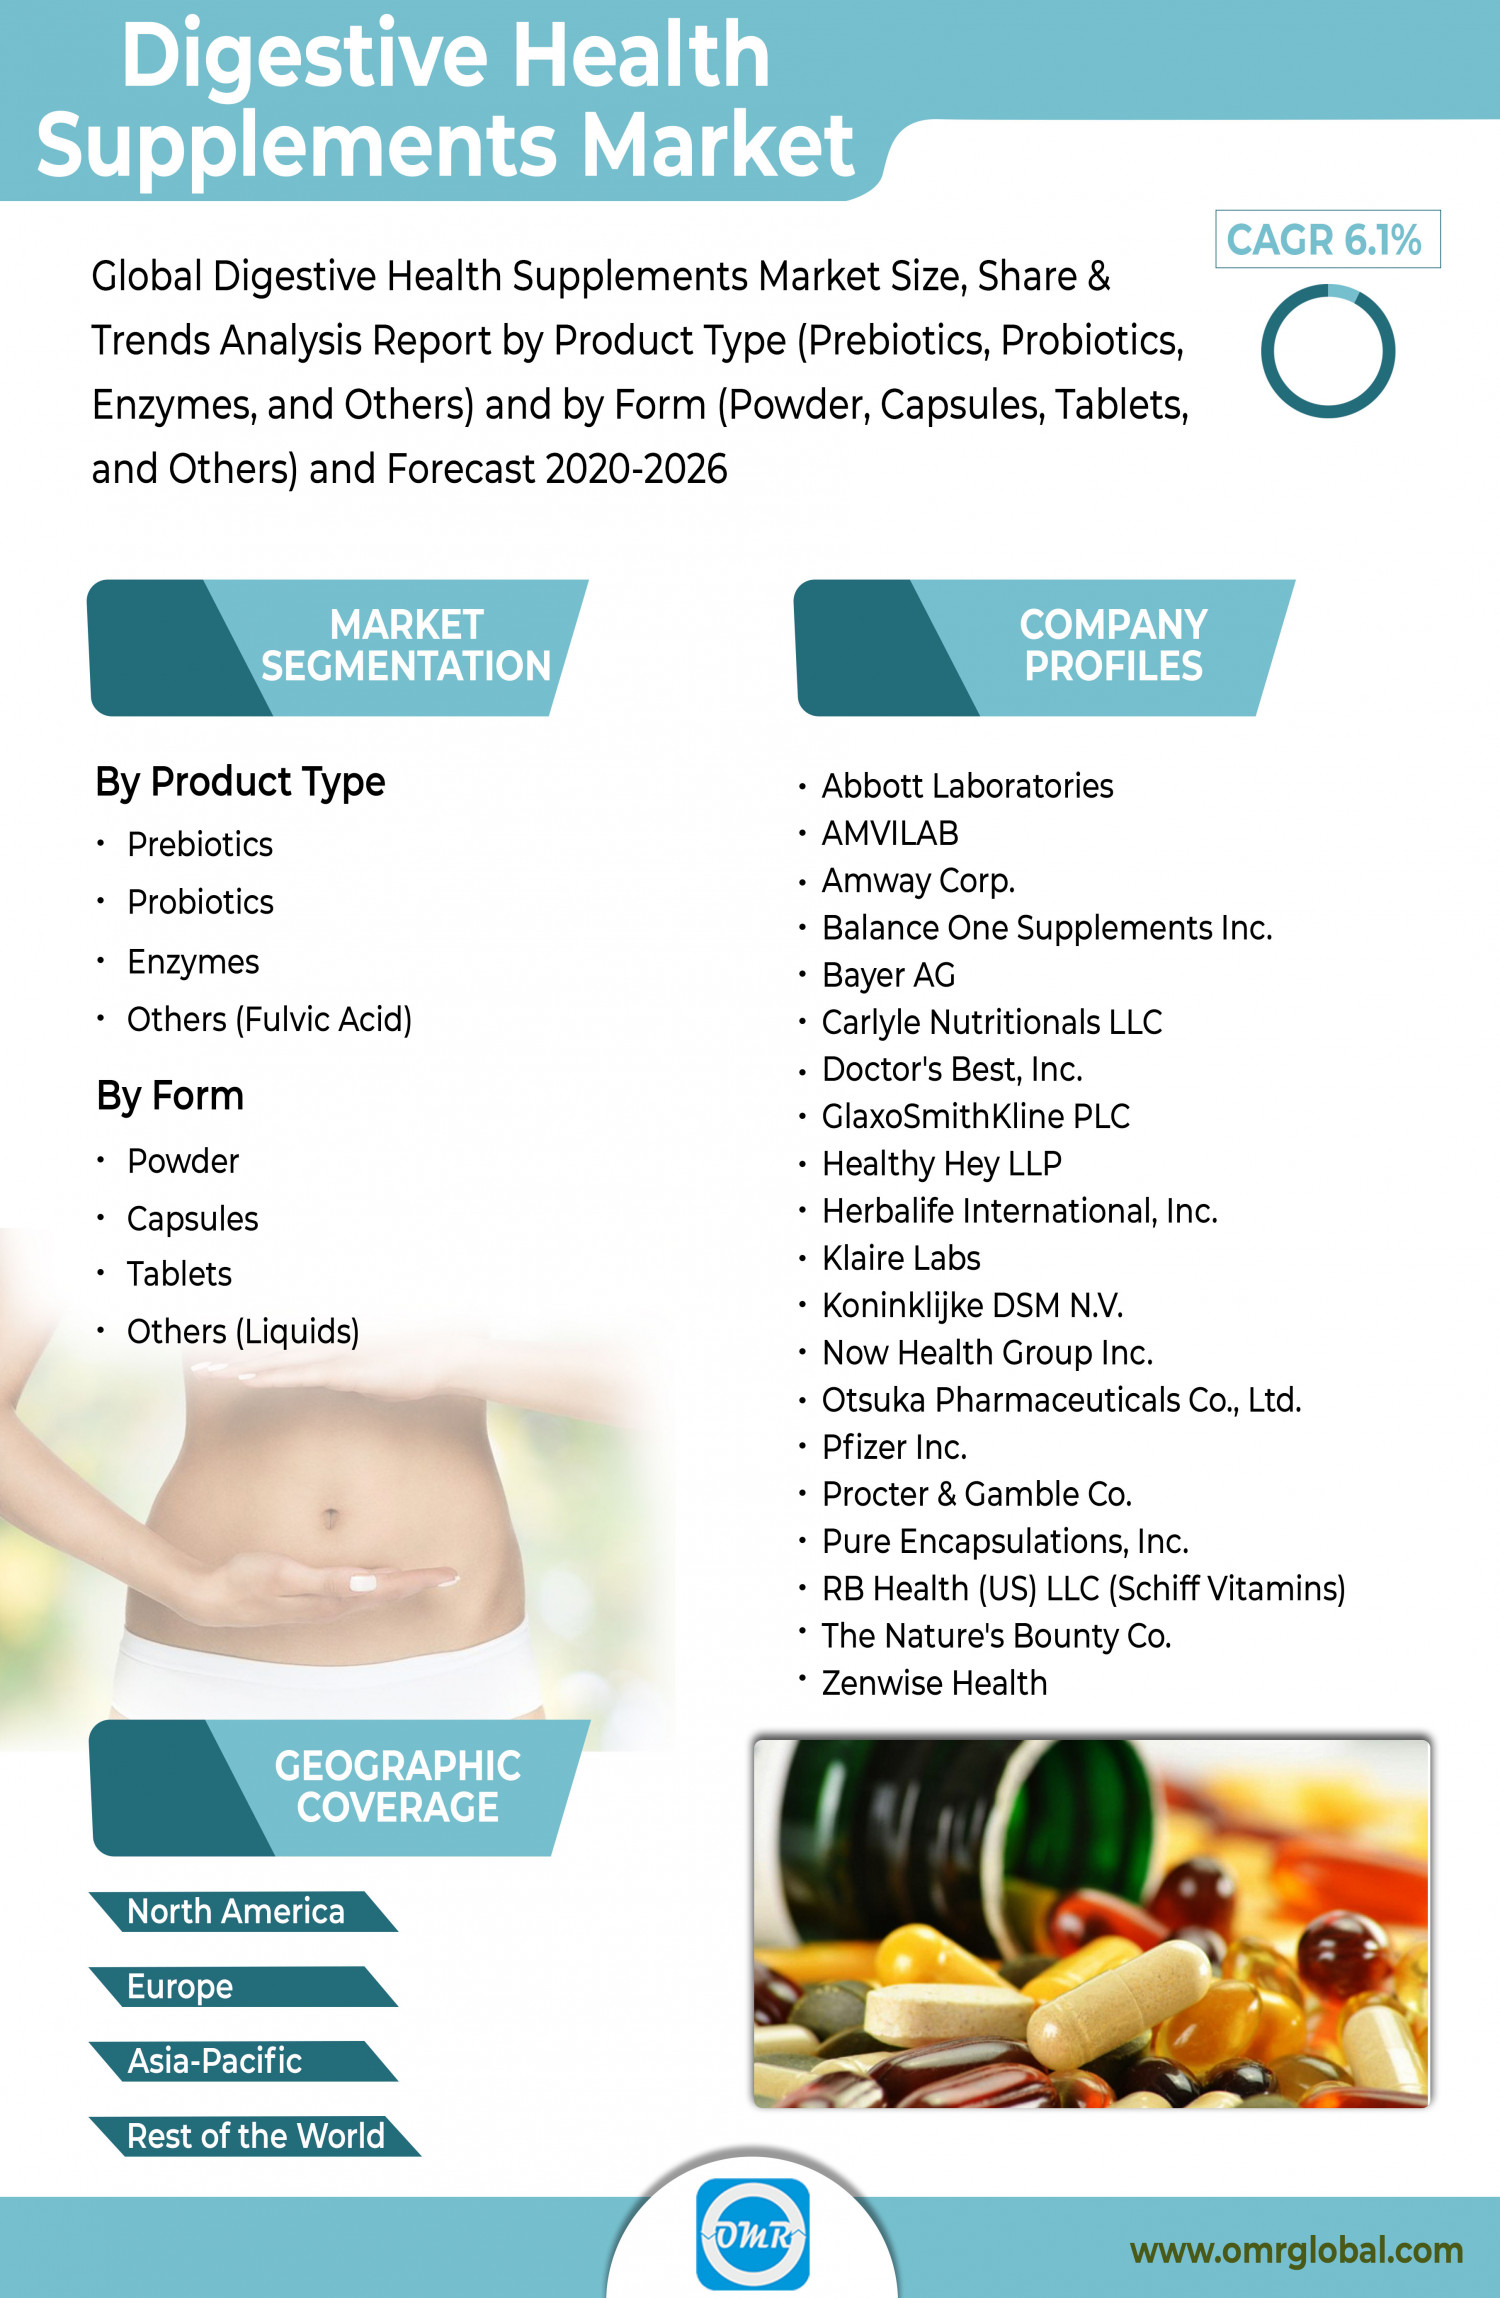 Digestive Health Supplements Market Growth, Size, Share and Forecast 2020-2026 Infographic